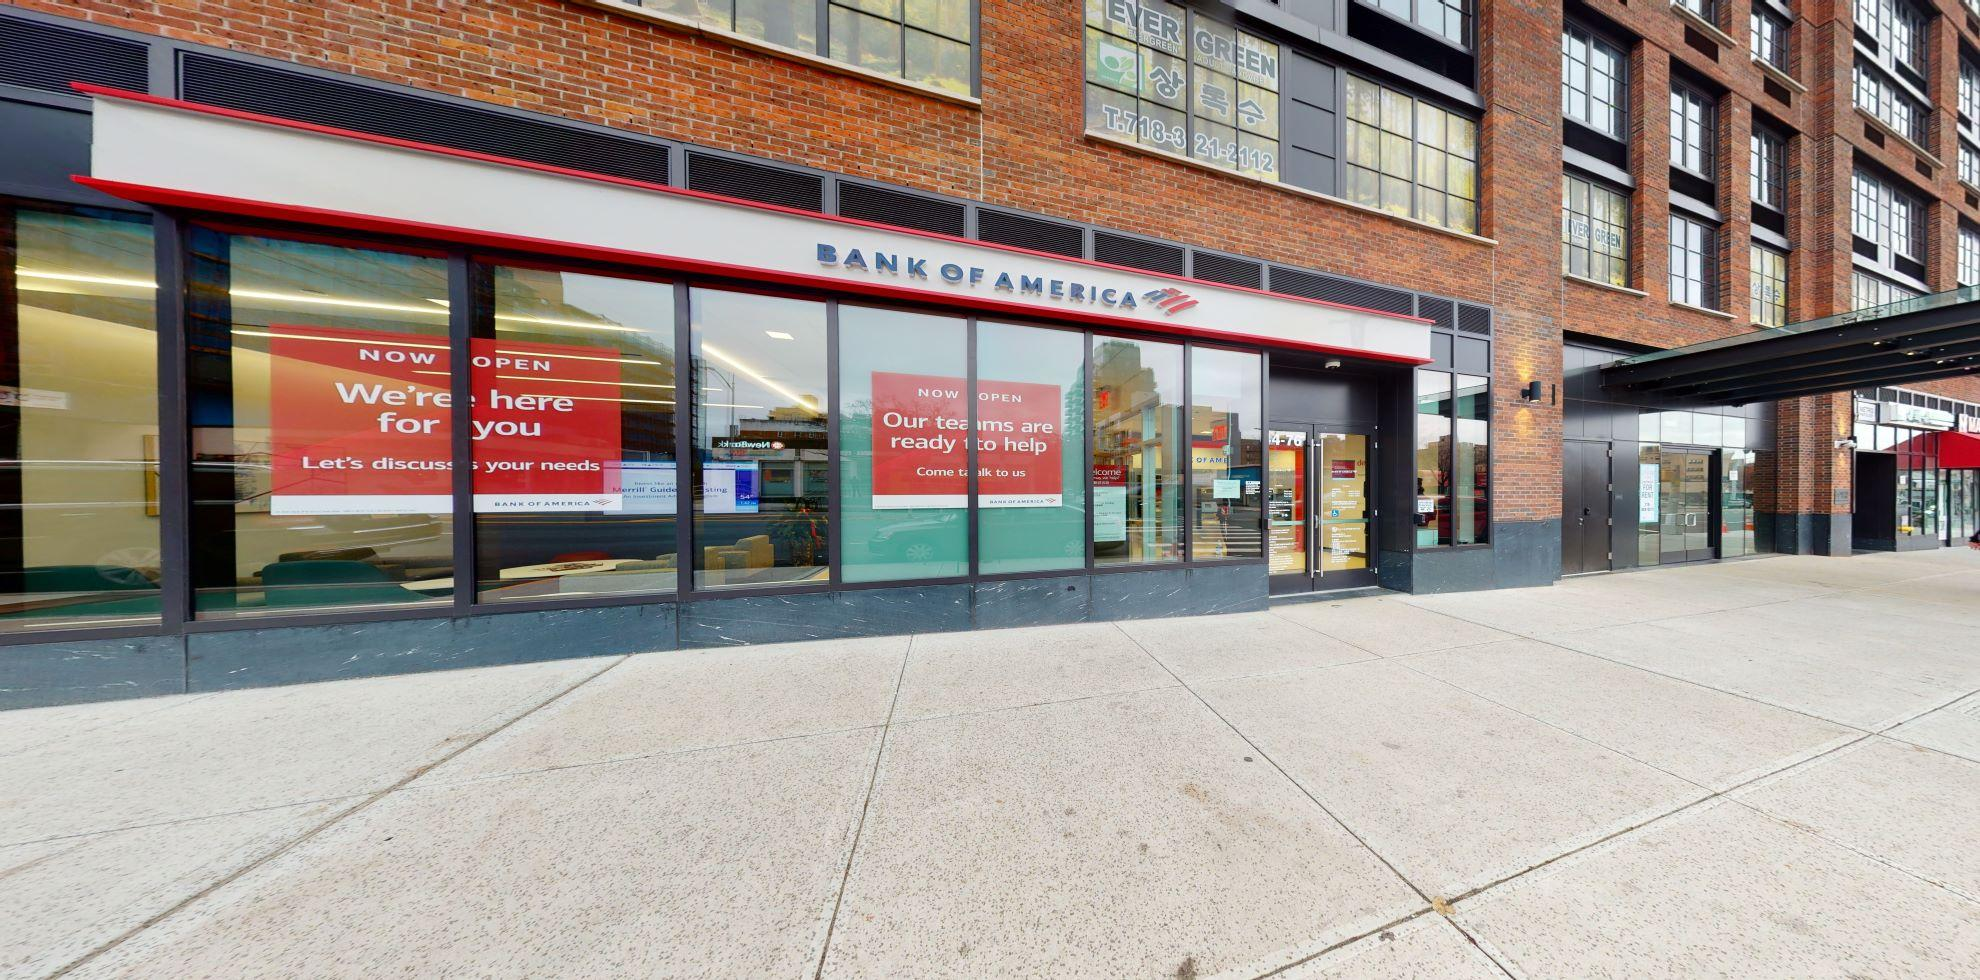 Bank of America financial center with walk-up ATM | 14476 Northern Blvd, Flushing, NY 11354